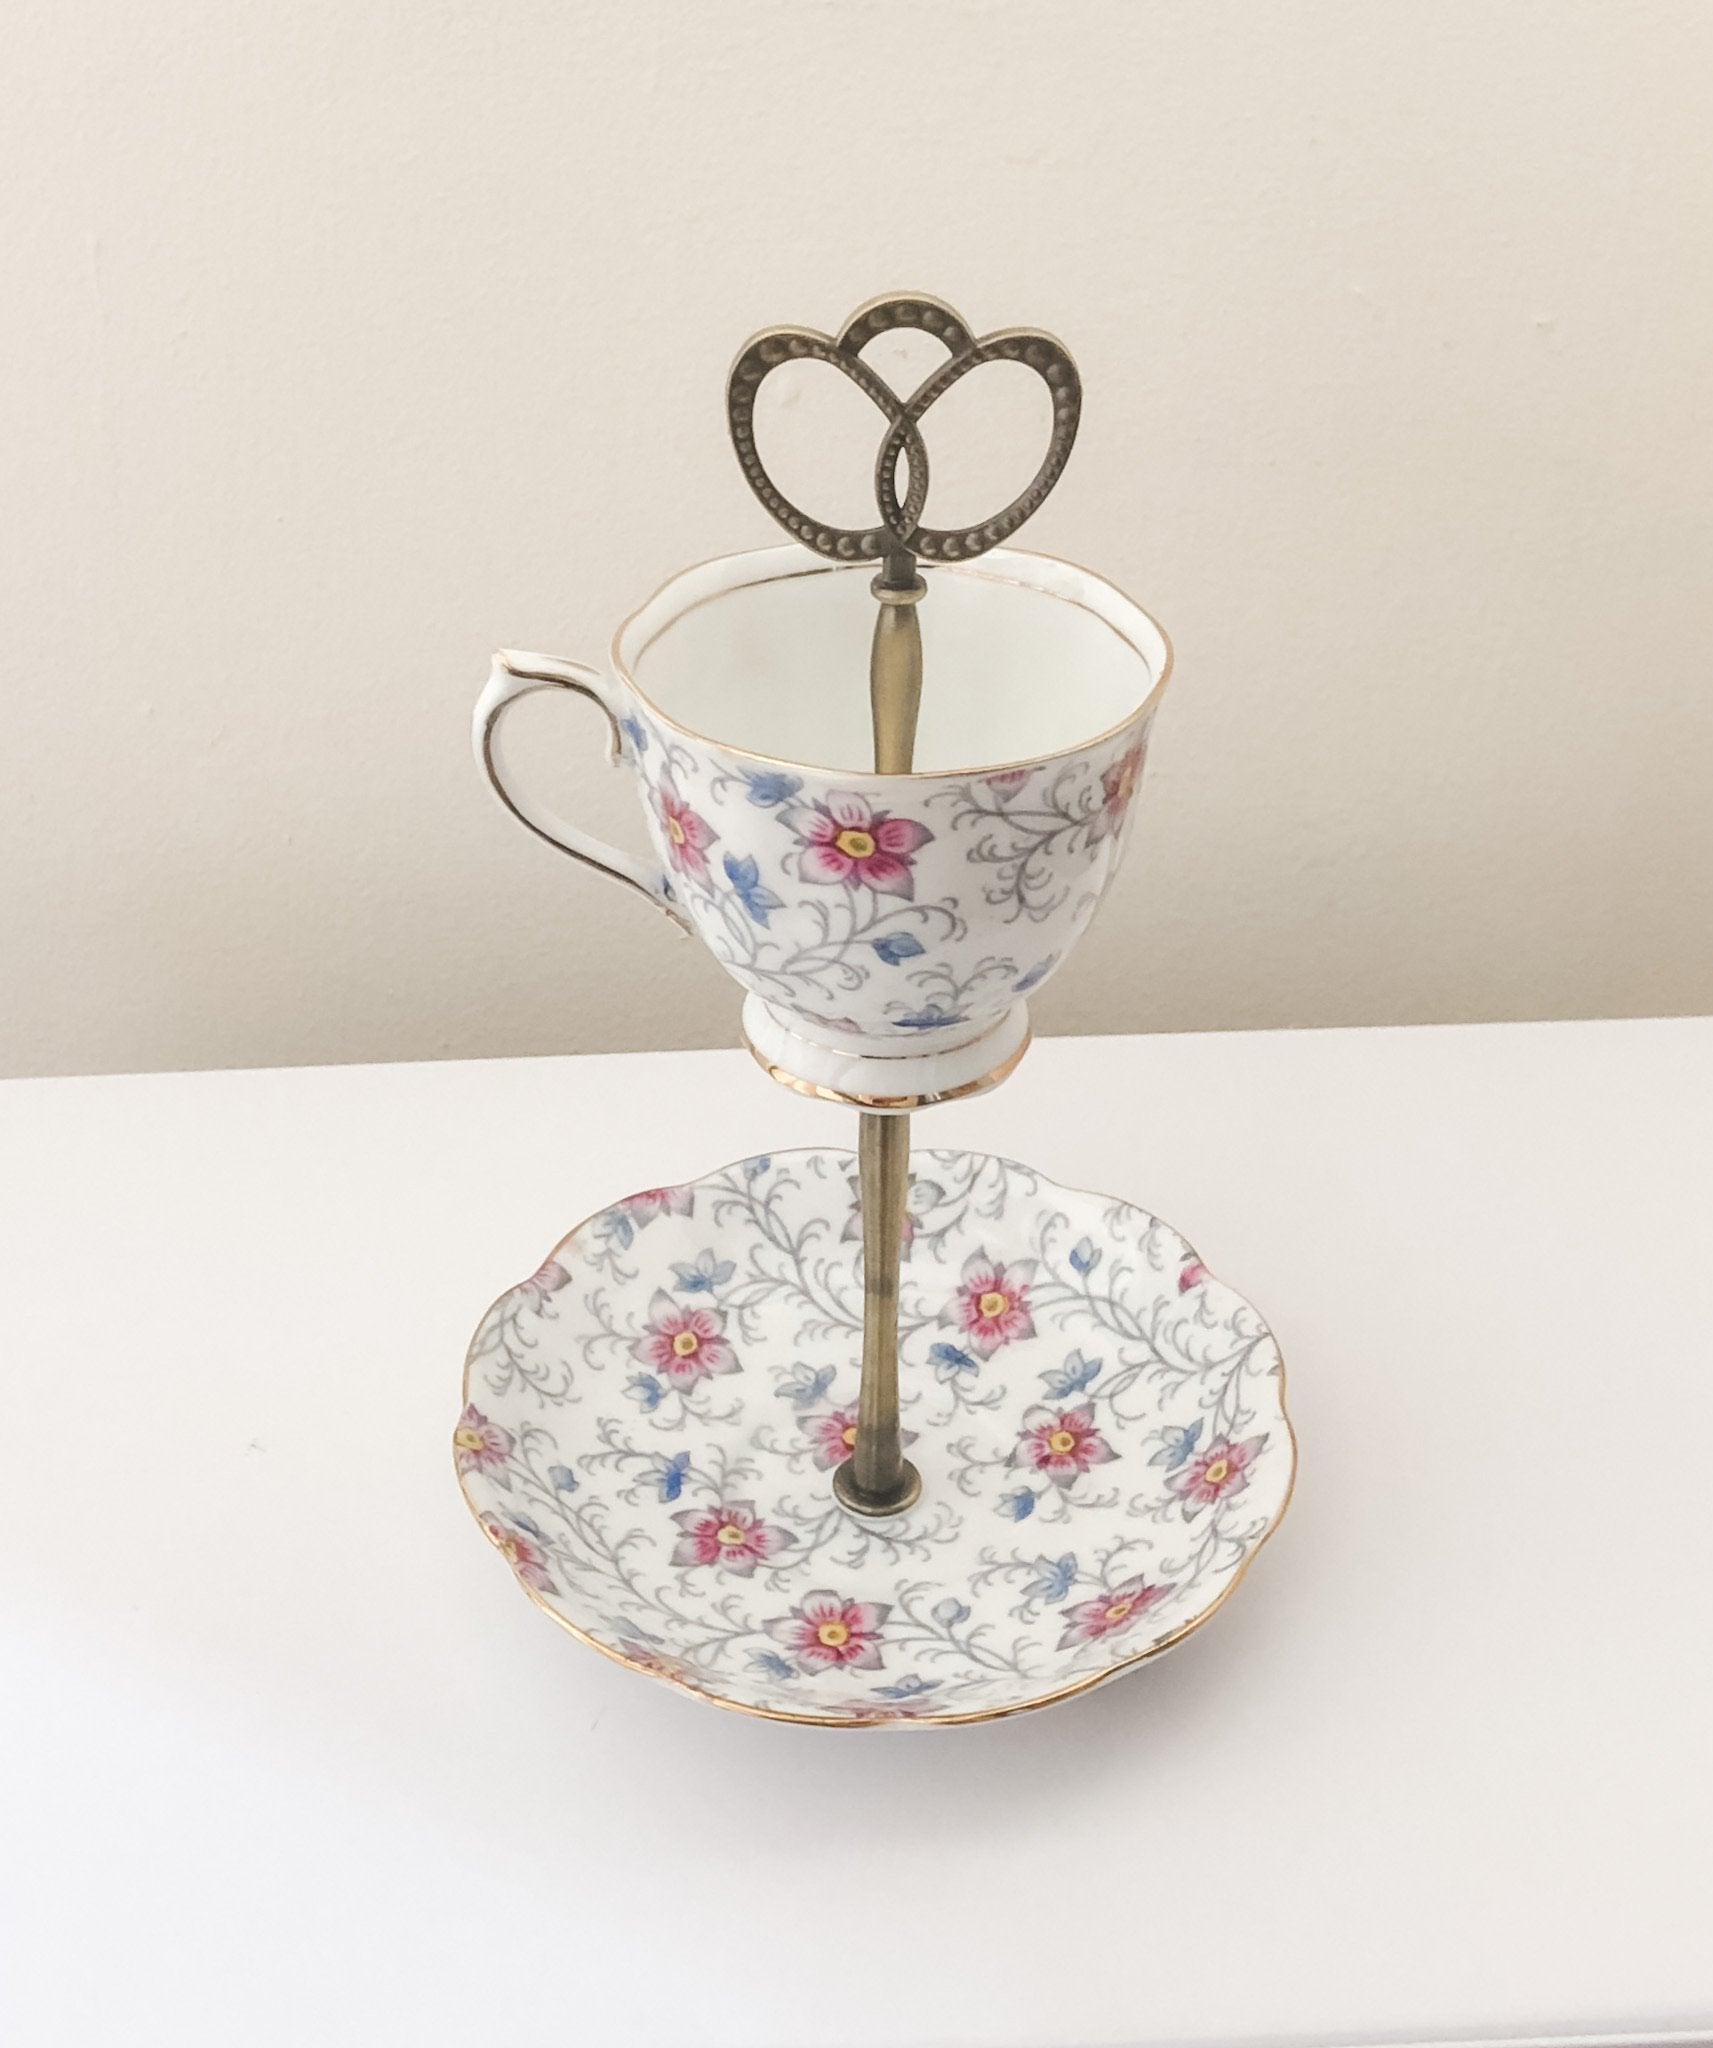 Floral teacup & saucer set | The Brooklyn Teacup - The Brooklyn Teacup